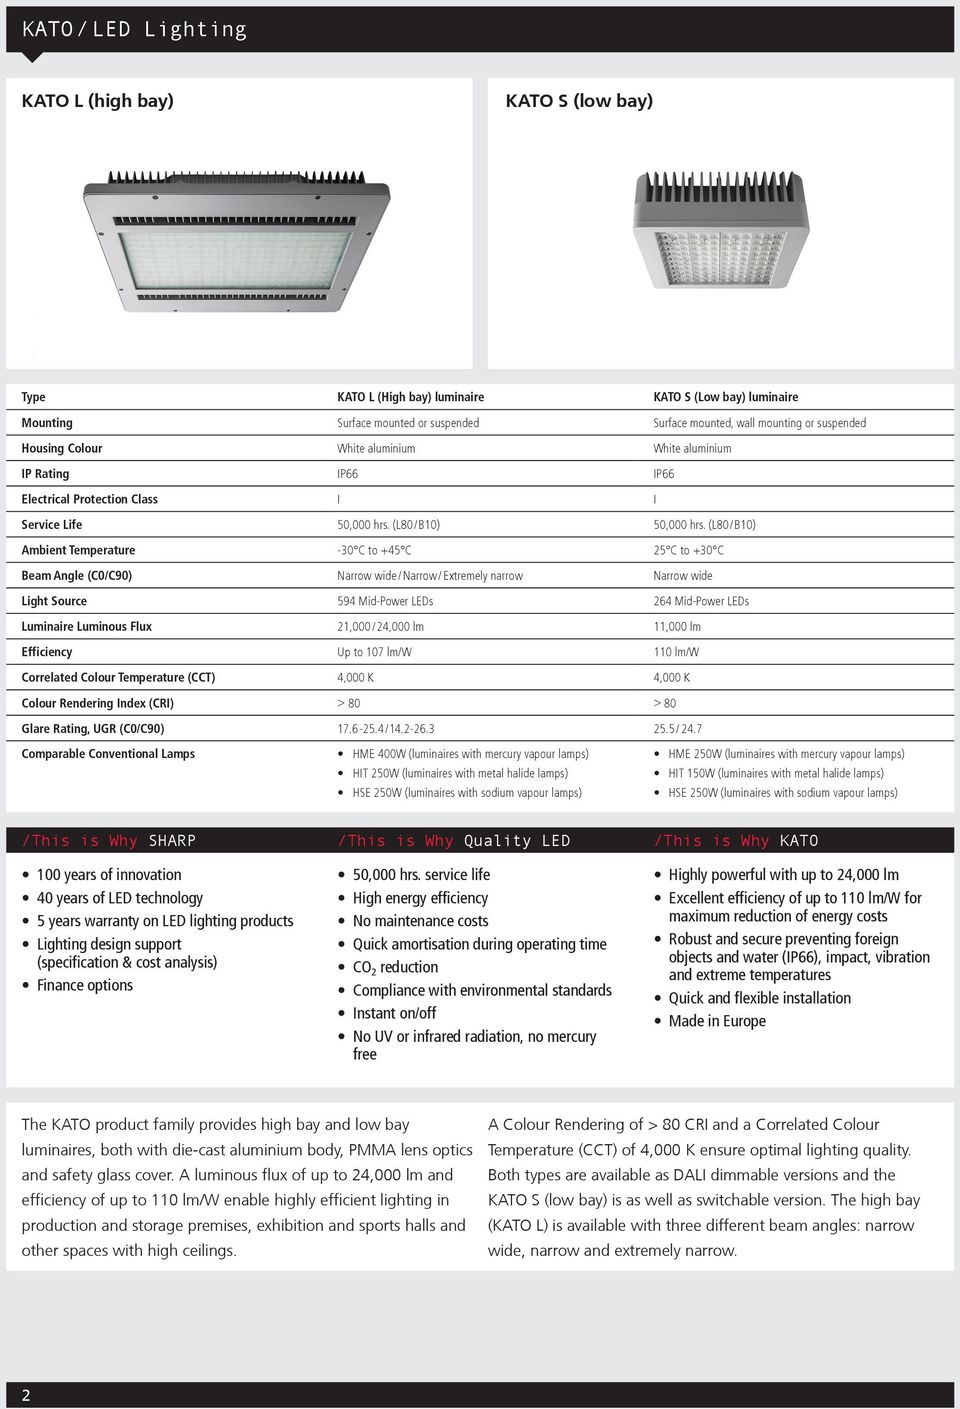 (L80/ B10) Ambient Temperature -30 C to +45 C 25 C to +30 C Beam Angle (C0/C90) Narrow wide / Narrow / Extremely narrow Narrow wide Light Source 594 Mid-Power LEDs 264 Mid-Power LEDs Luminaire